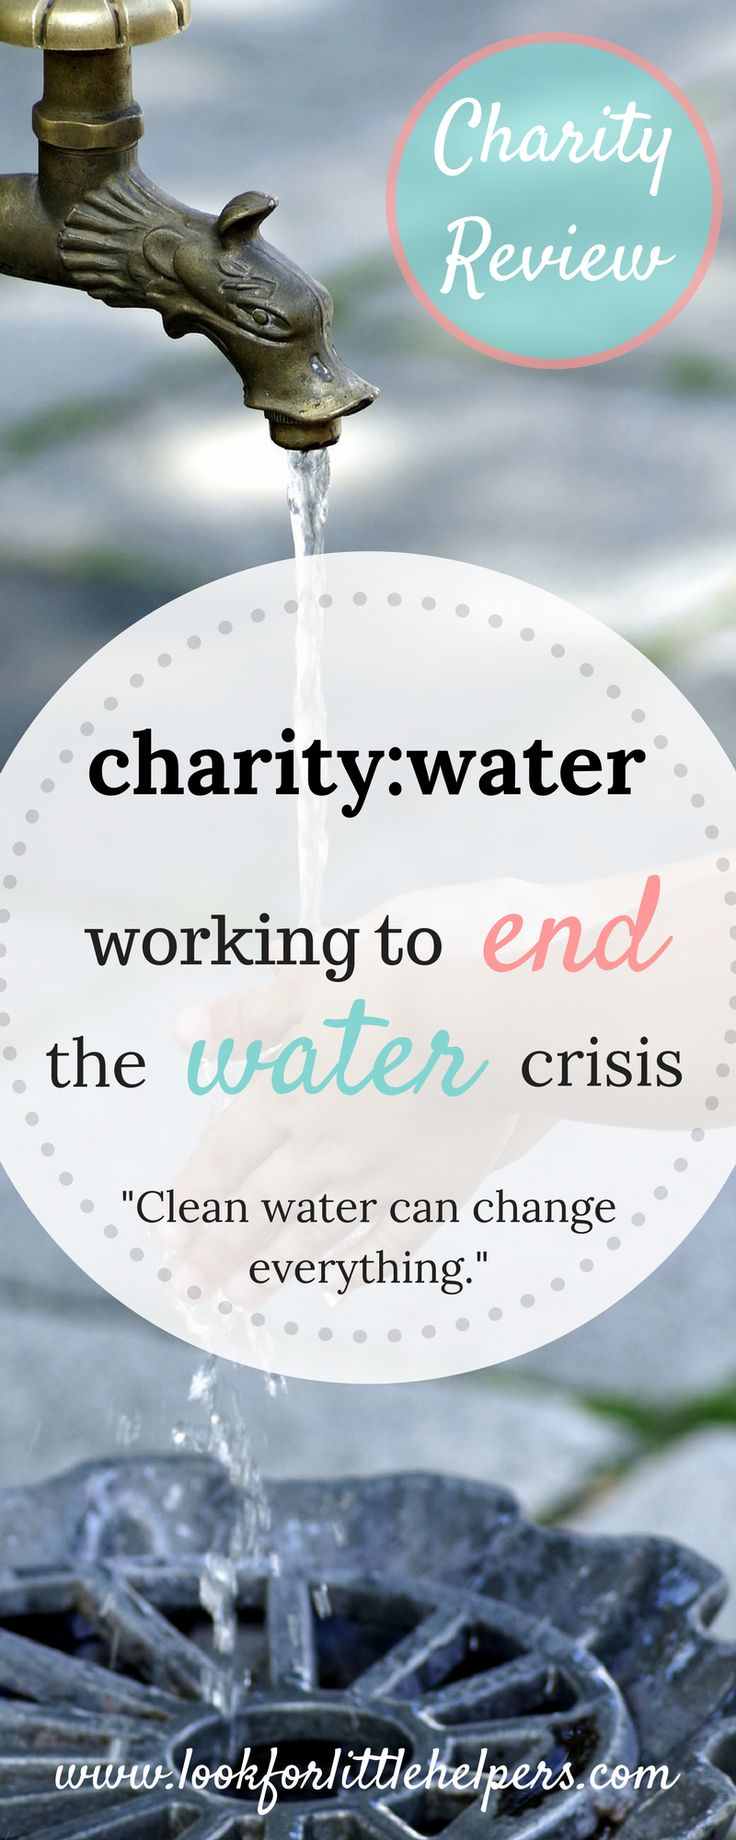 #globallearning #watercrisis. #charitywater #charitywater #kindness